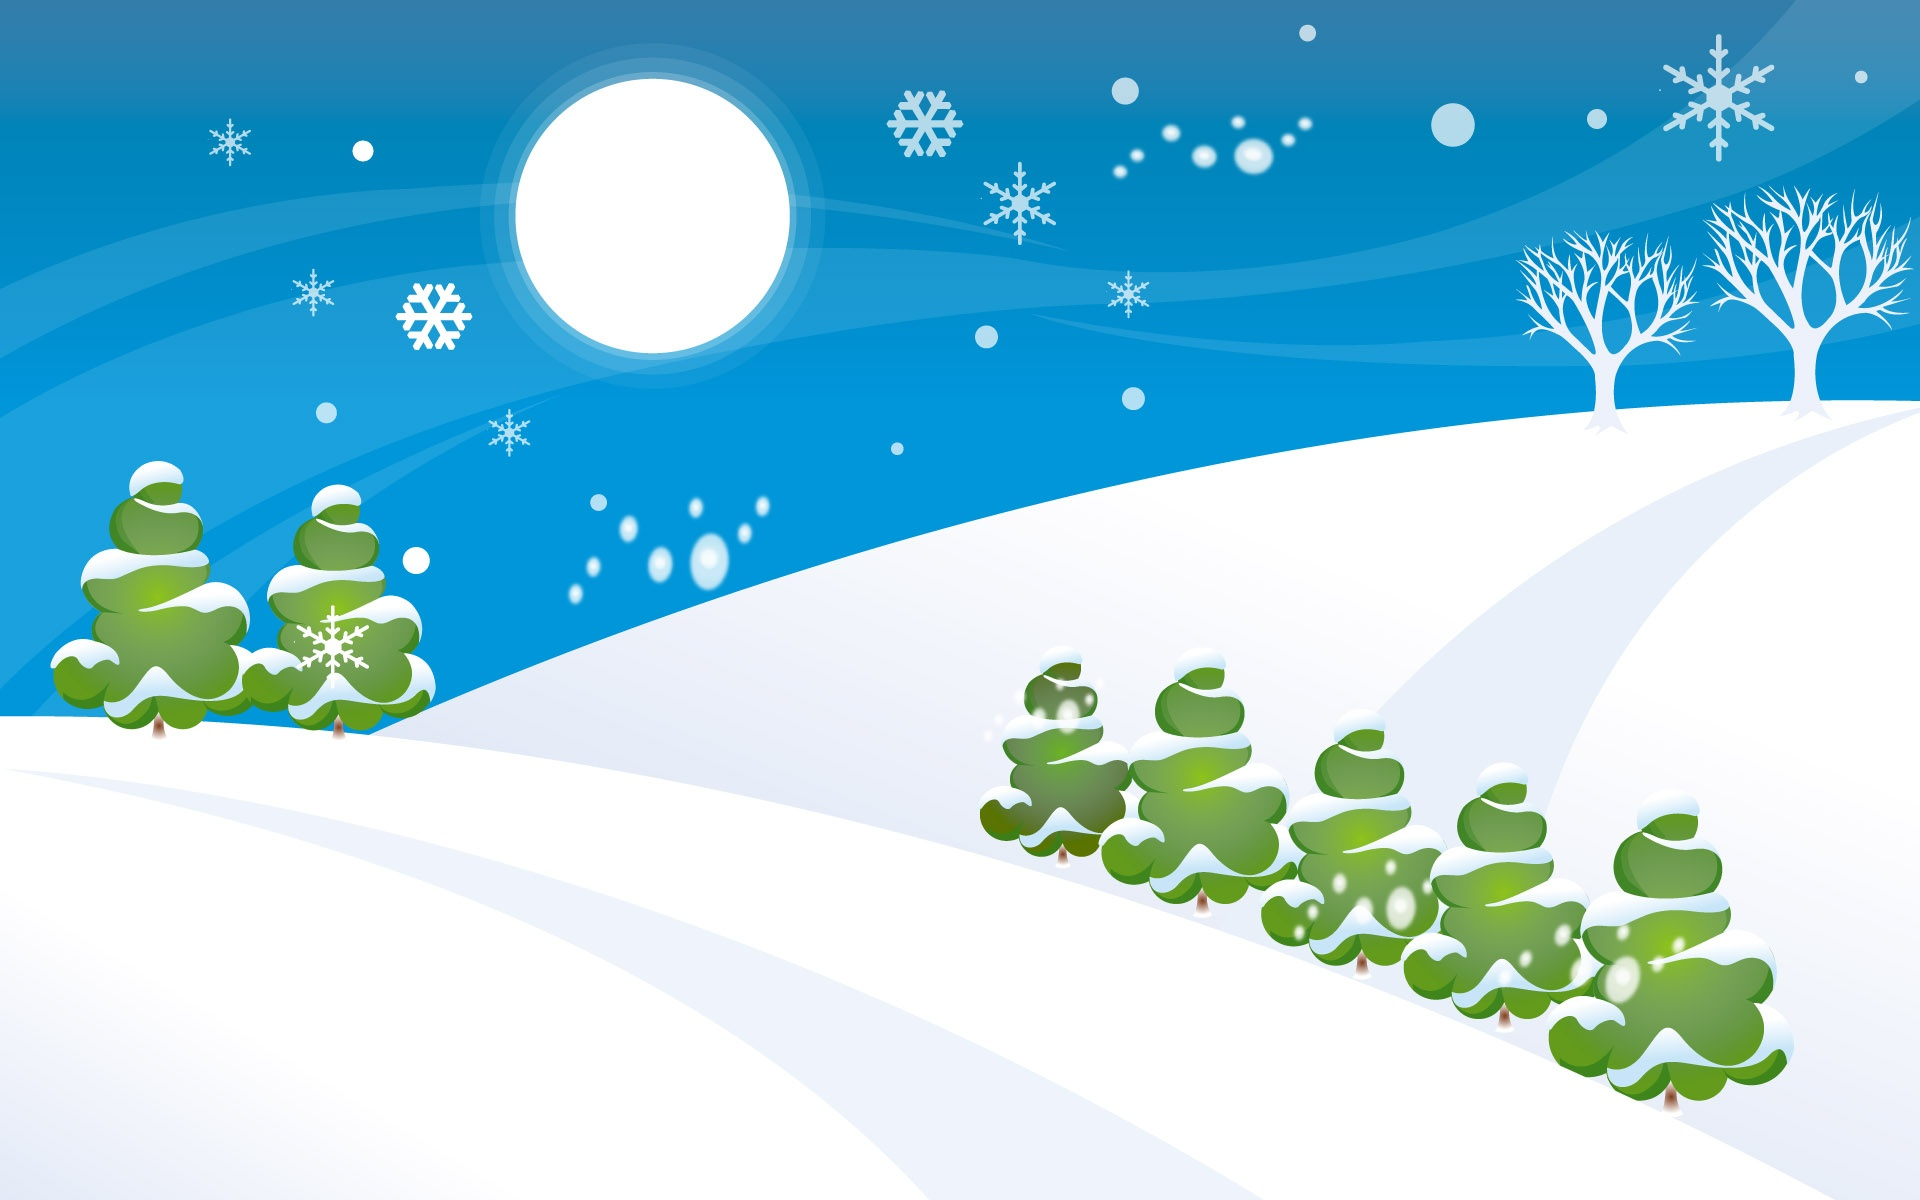 Snowy day clipart 4 » Clipart Station.